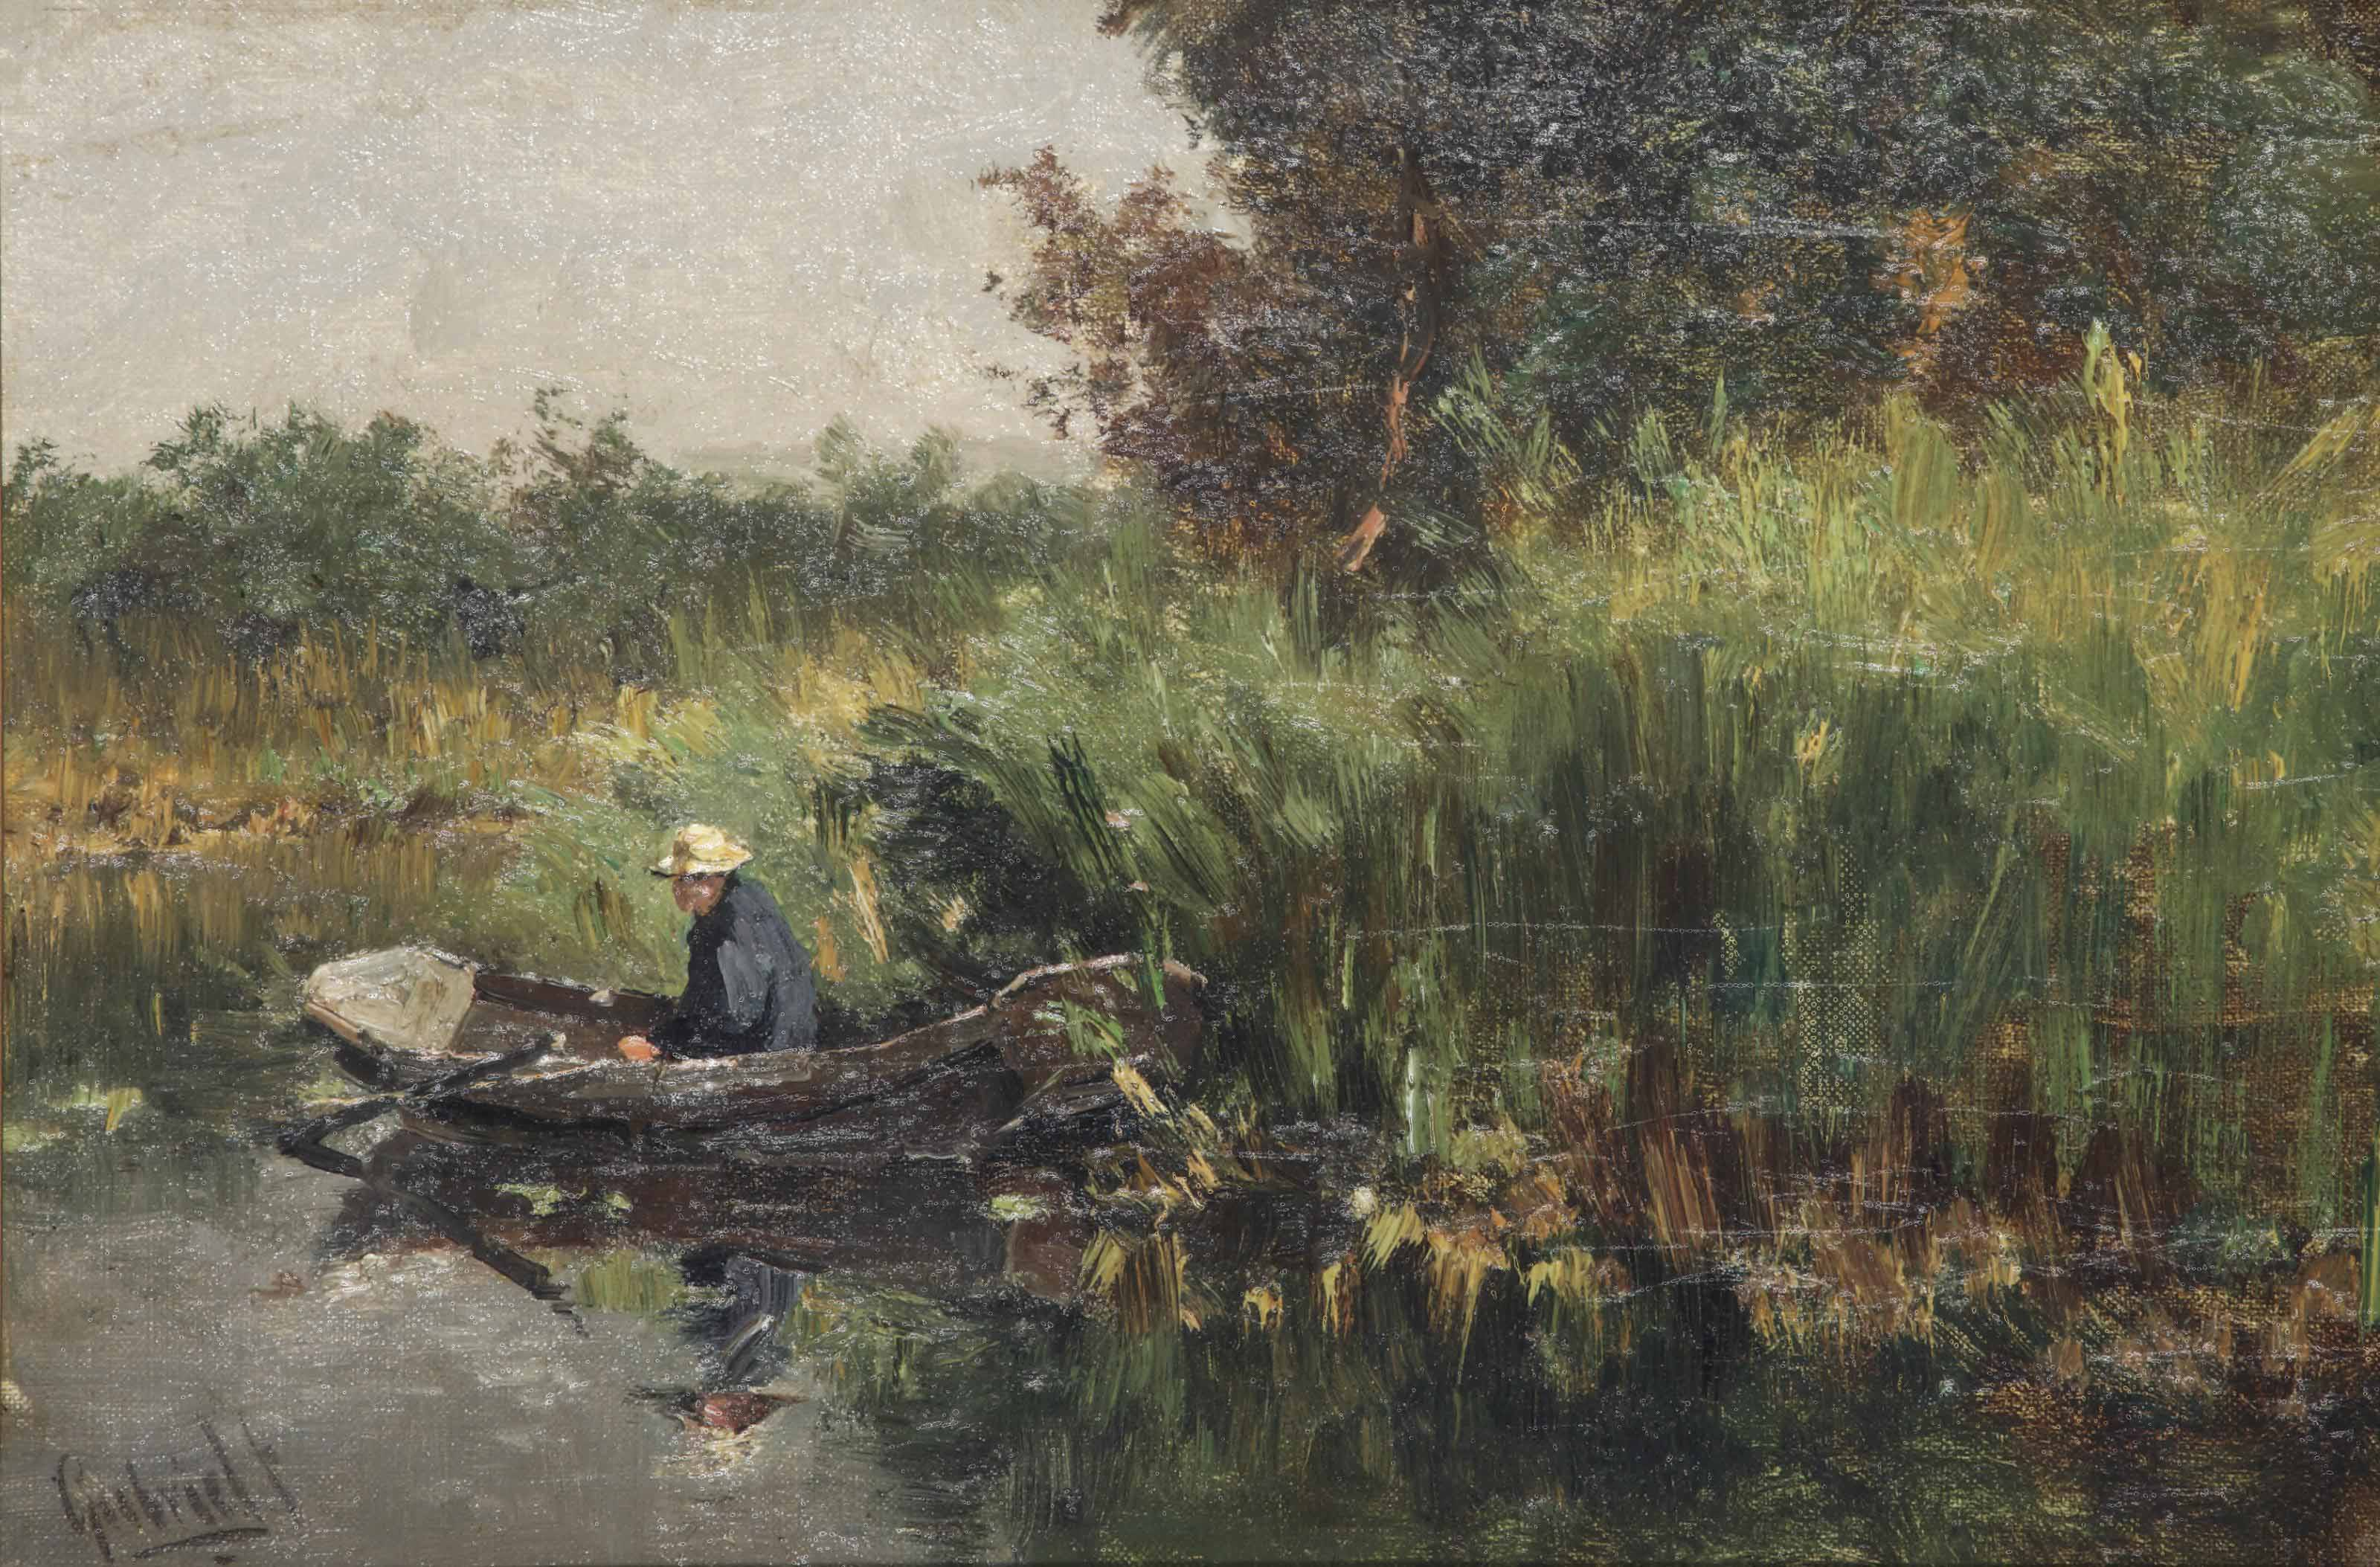 A fisherman in a rowing boat